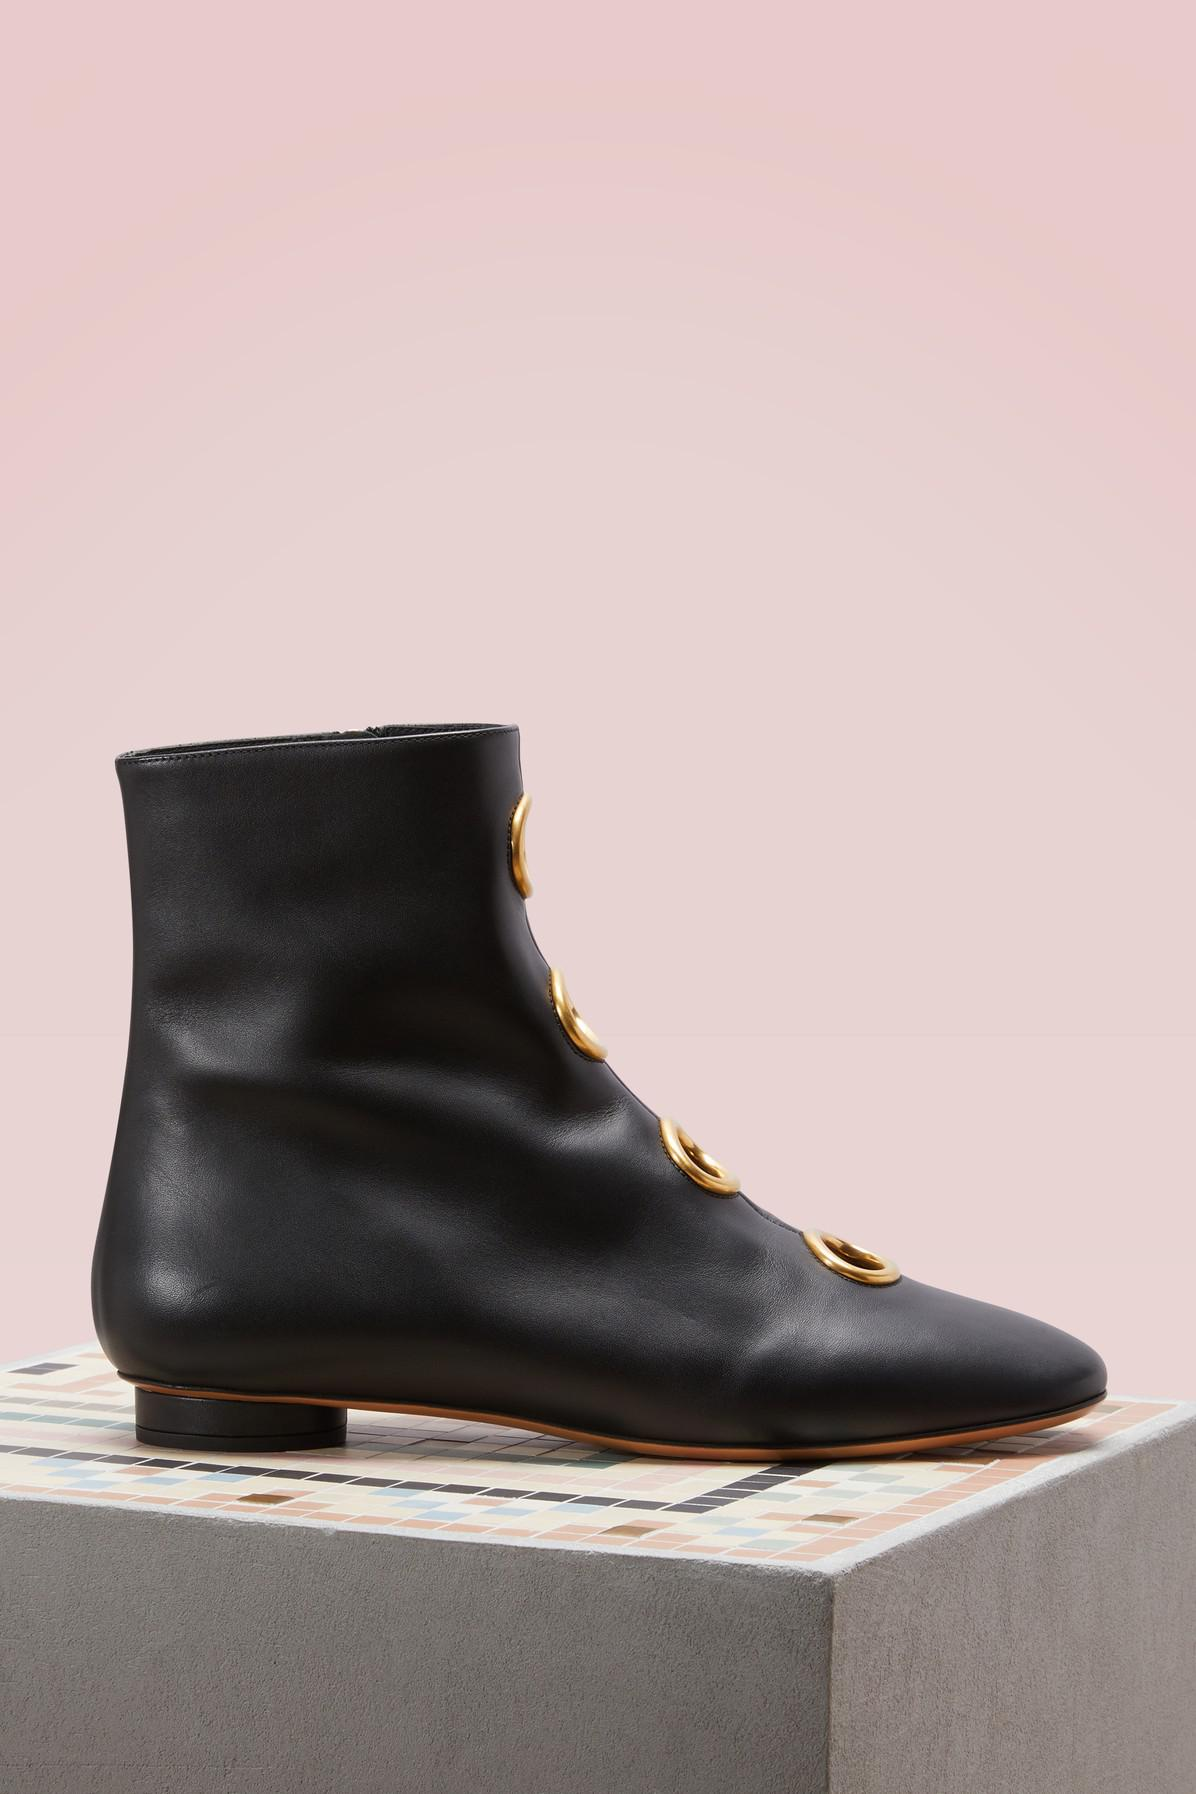 Valentino Leather Boots With Grommets y5XCHm